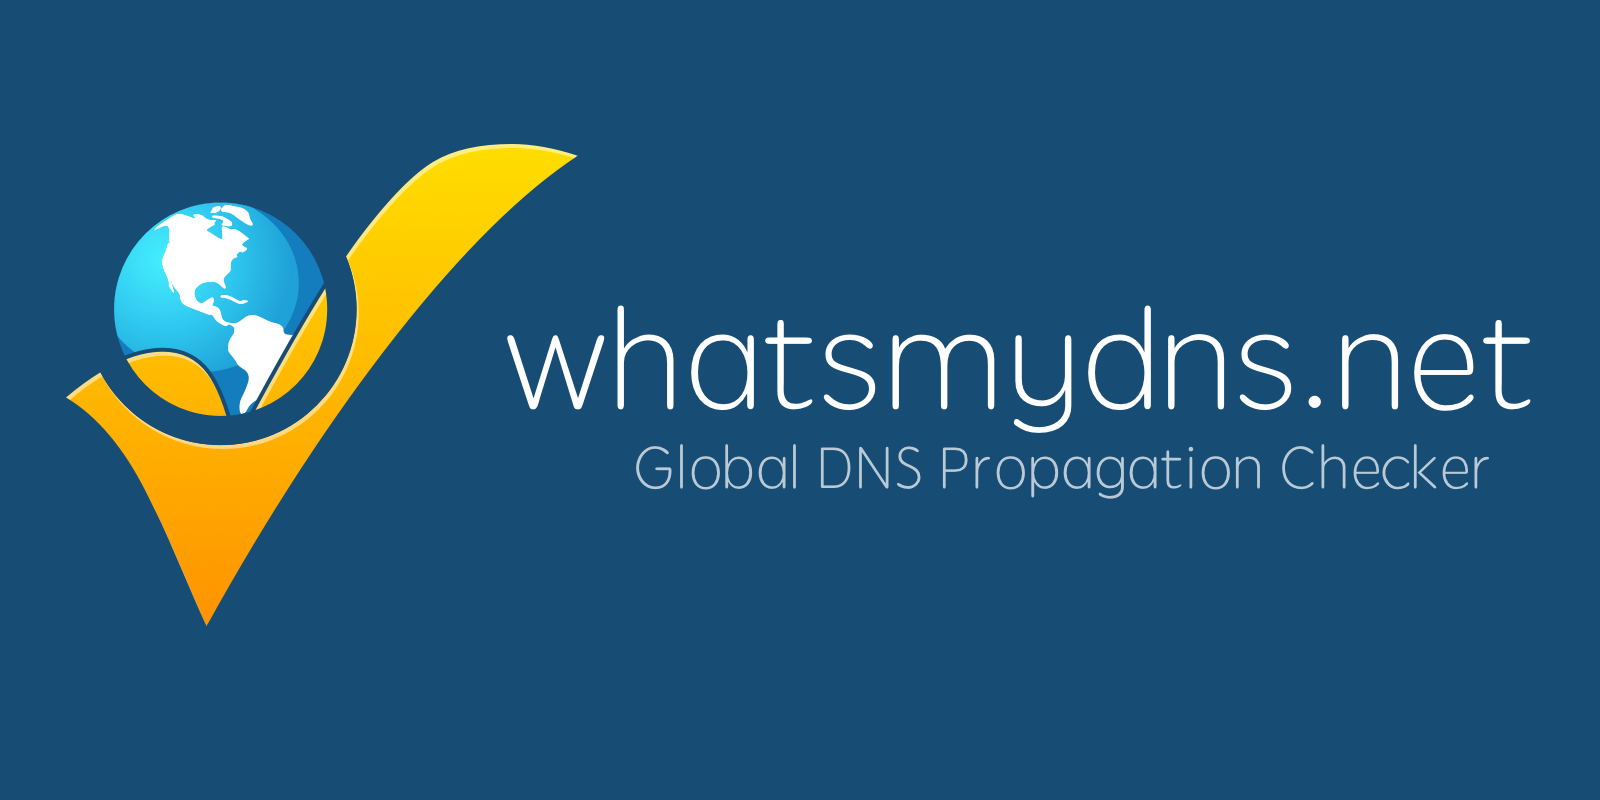 www.whatsmydns.net